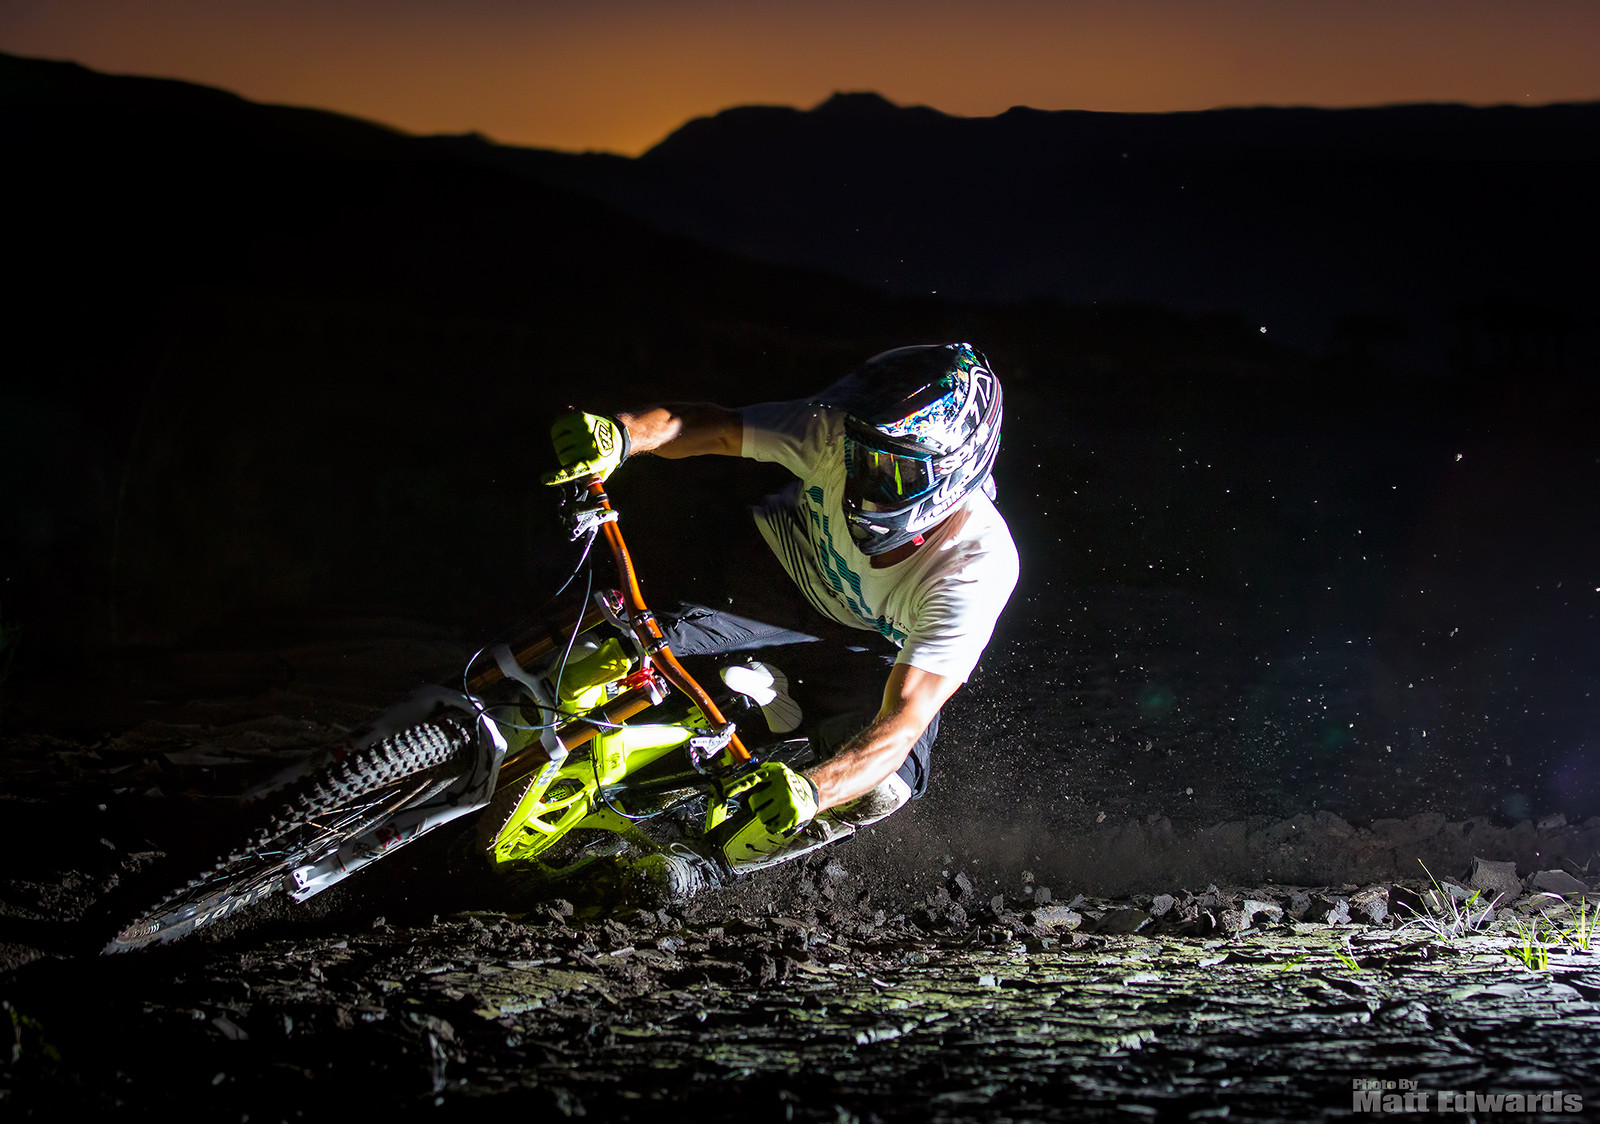 Going for the Bar Drag at night! - EdwardsEntertainment - Mountain Biking Pictures - Vital MTB